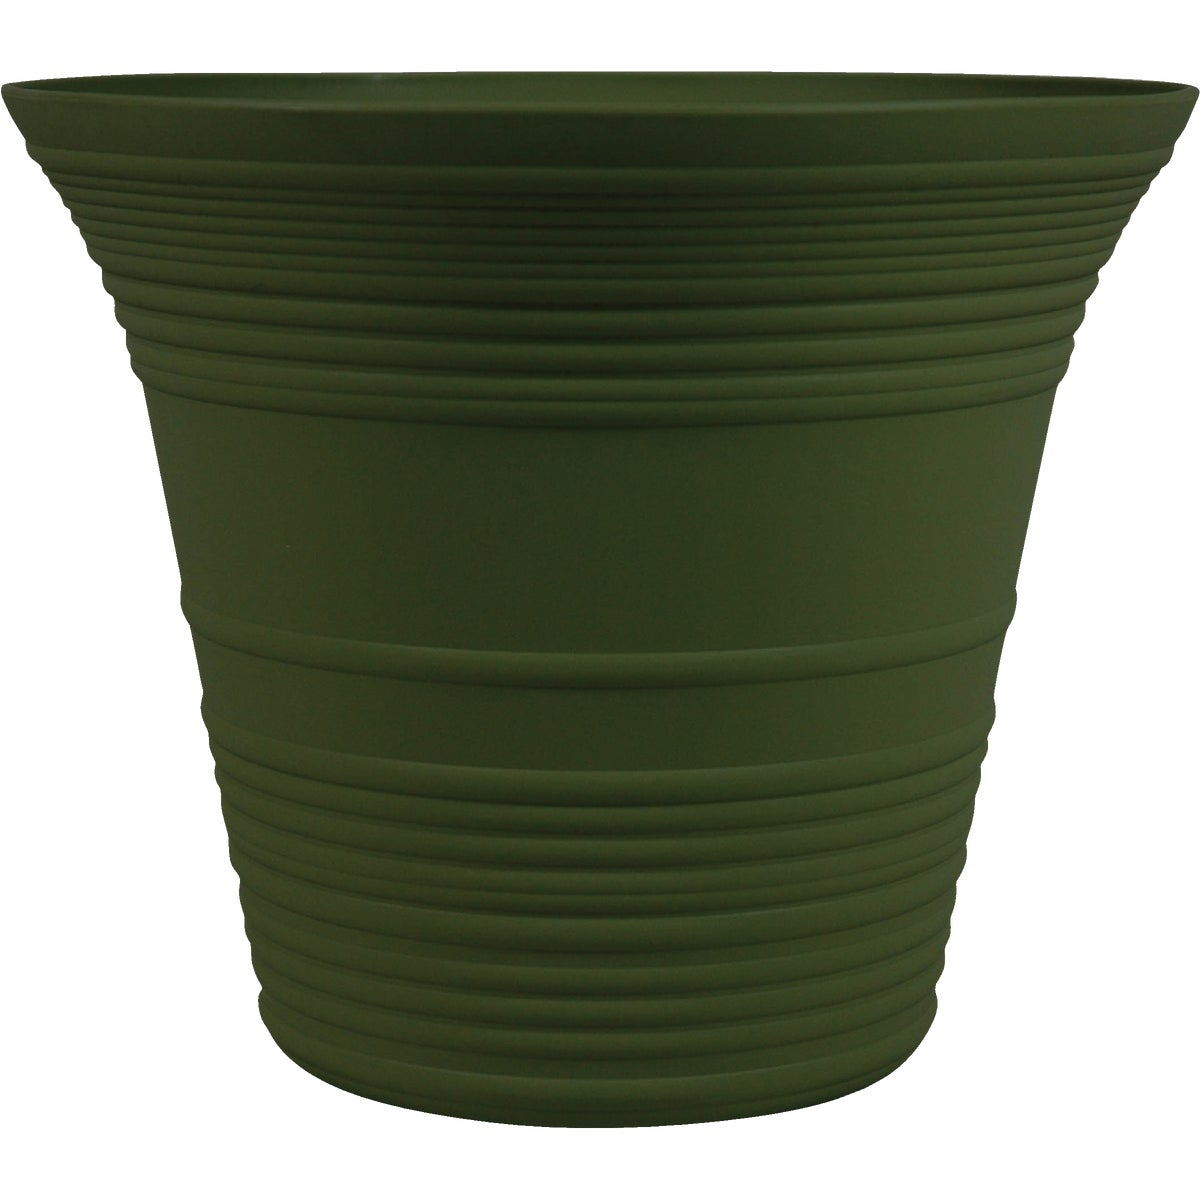 "7"" GREEN SEDONA PLNTER - SEA07001BA9 by Myers Industries Inc"